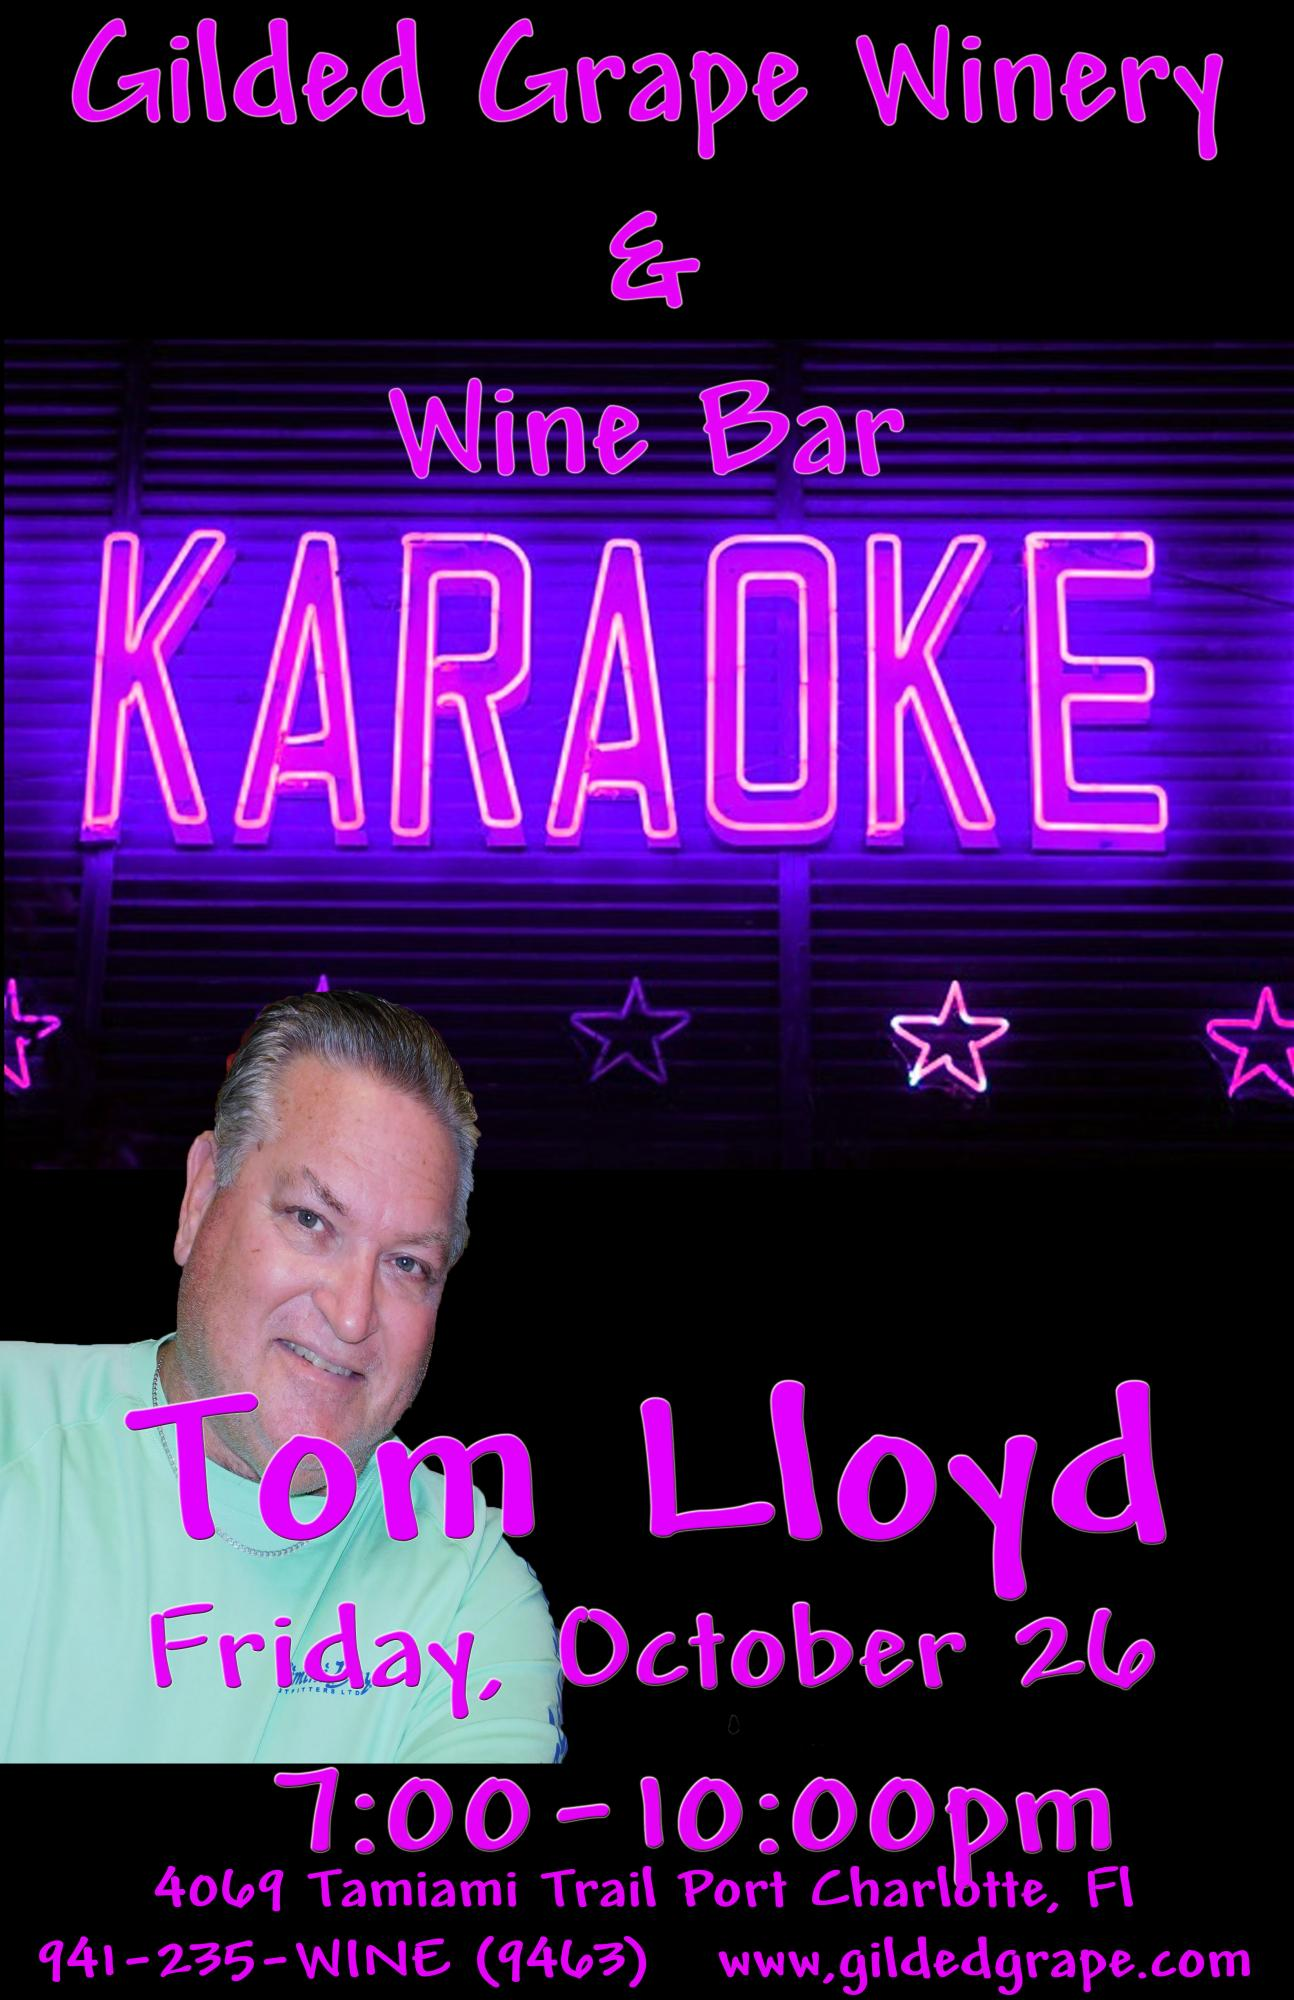 10-26_Tom_Lloyd_Karaoke.jpg